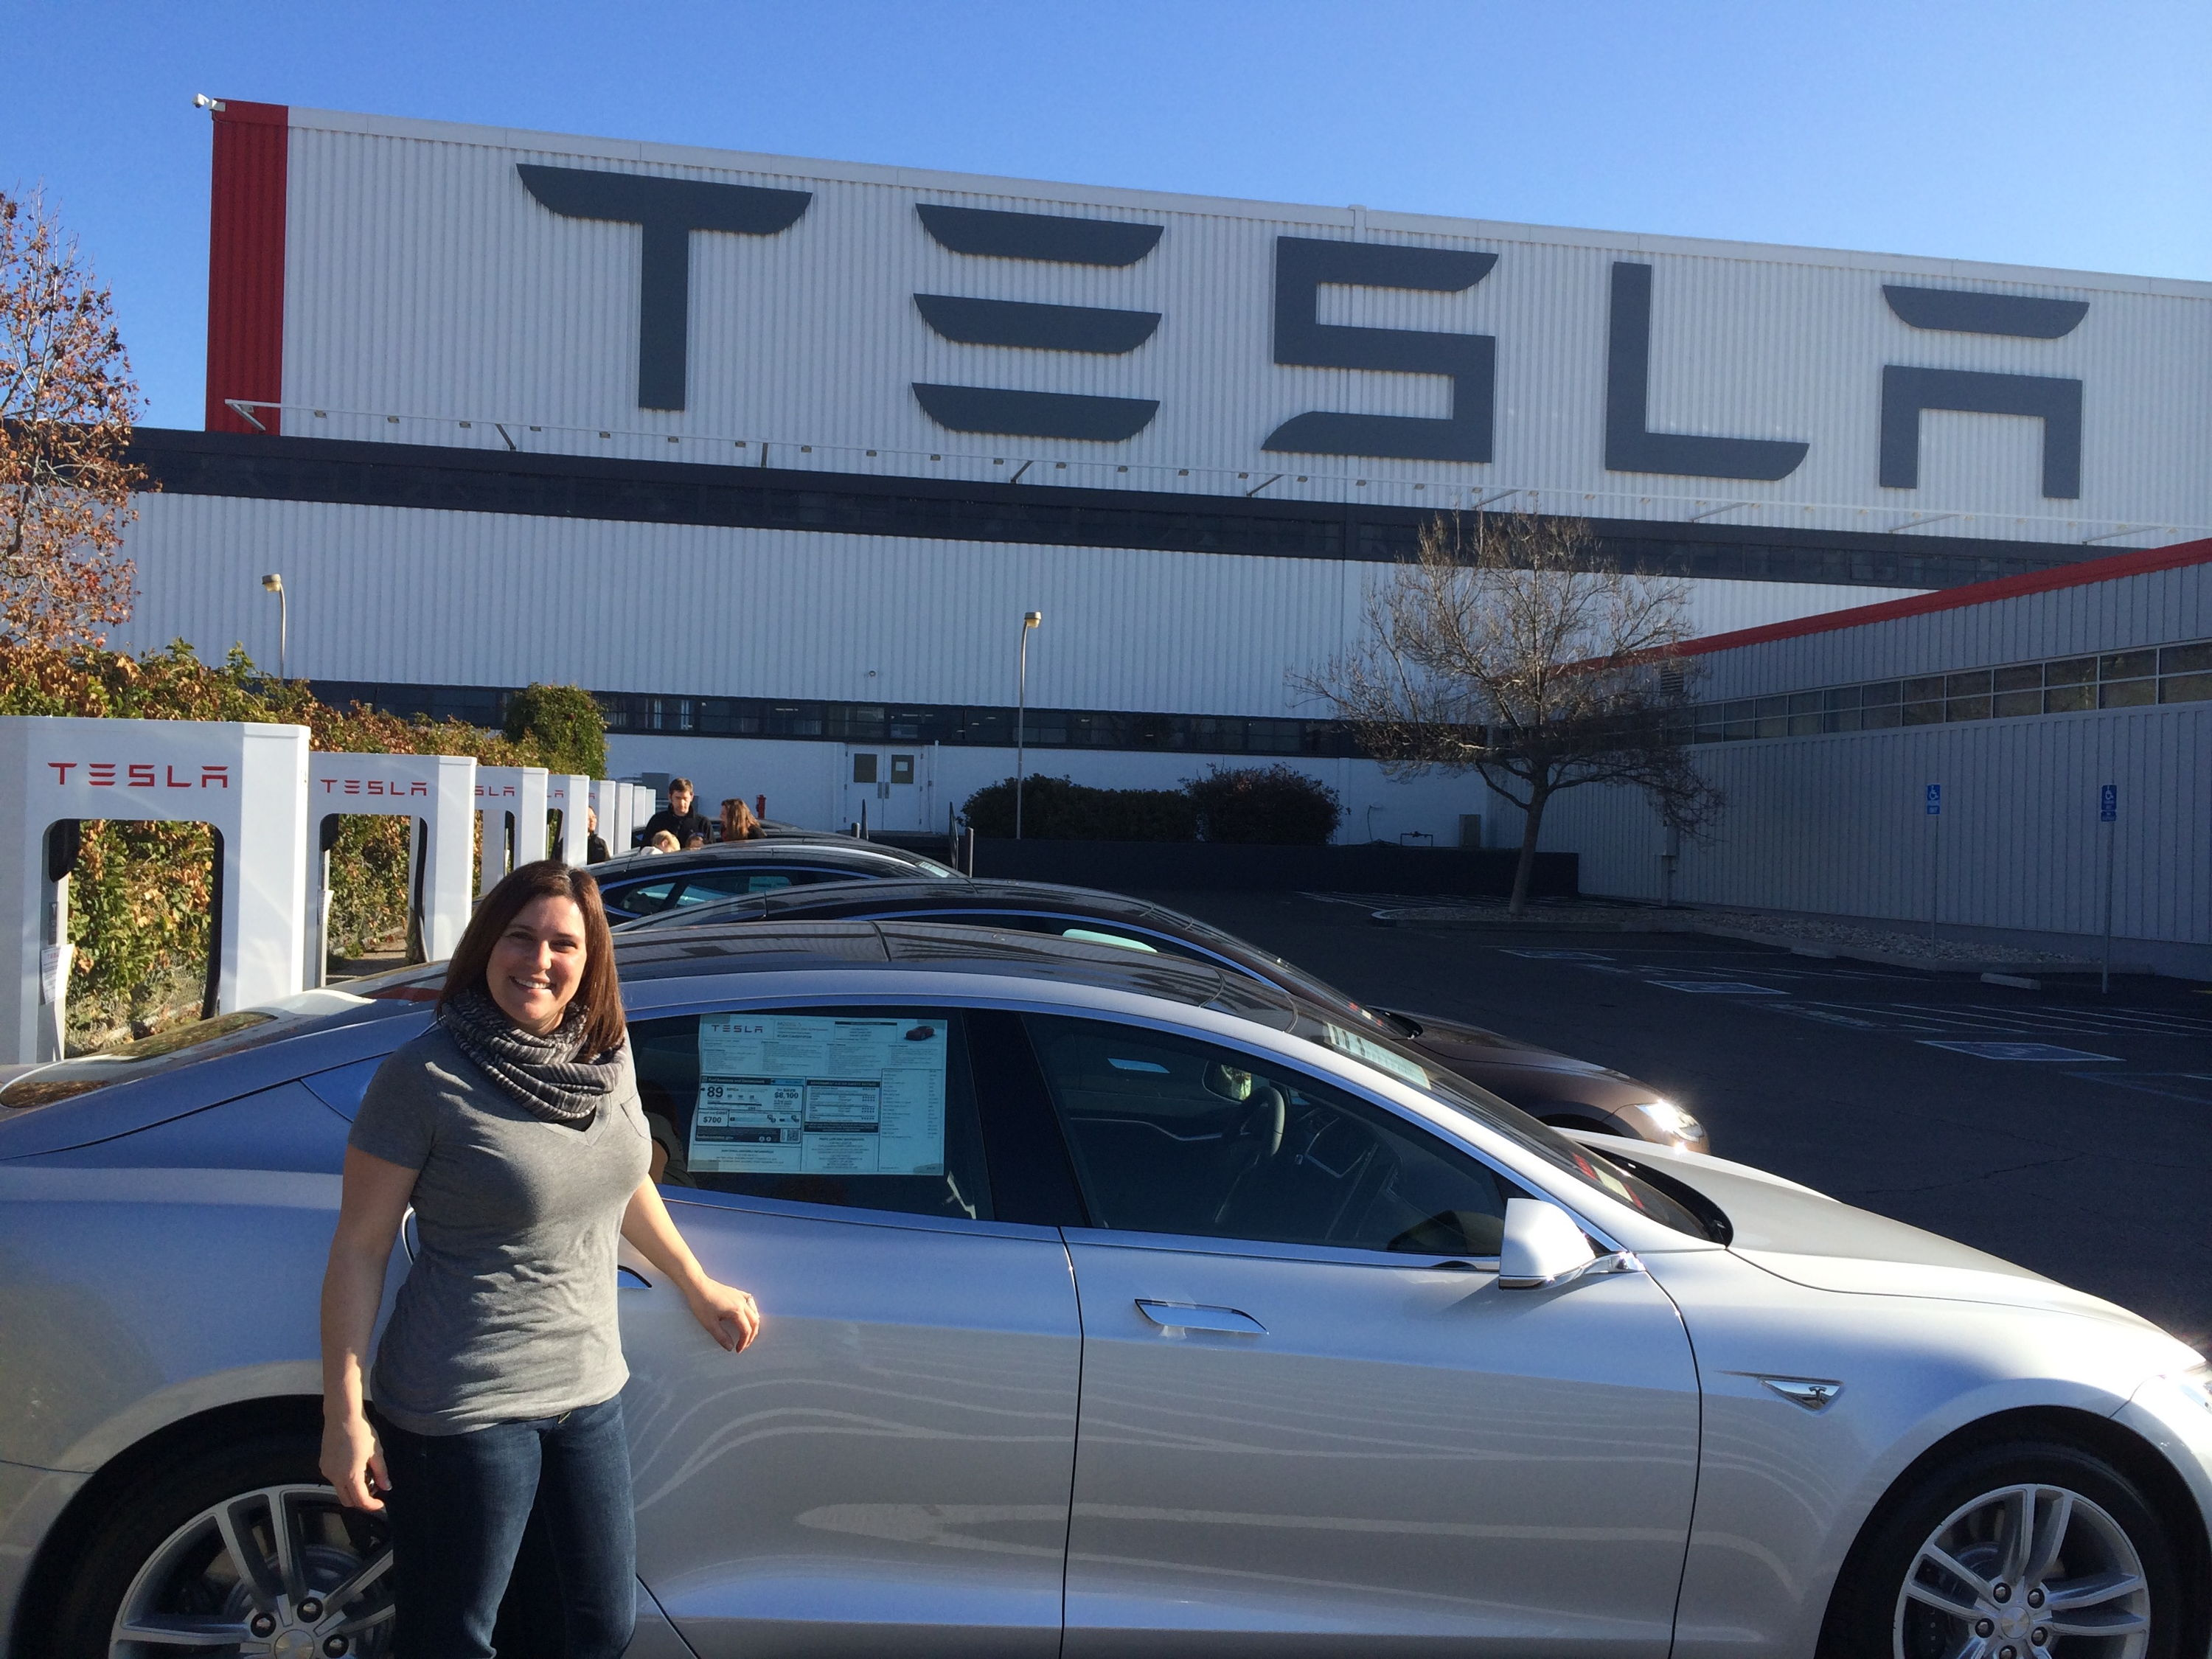 Tesla owners and specialists | Autoskinz